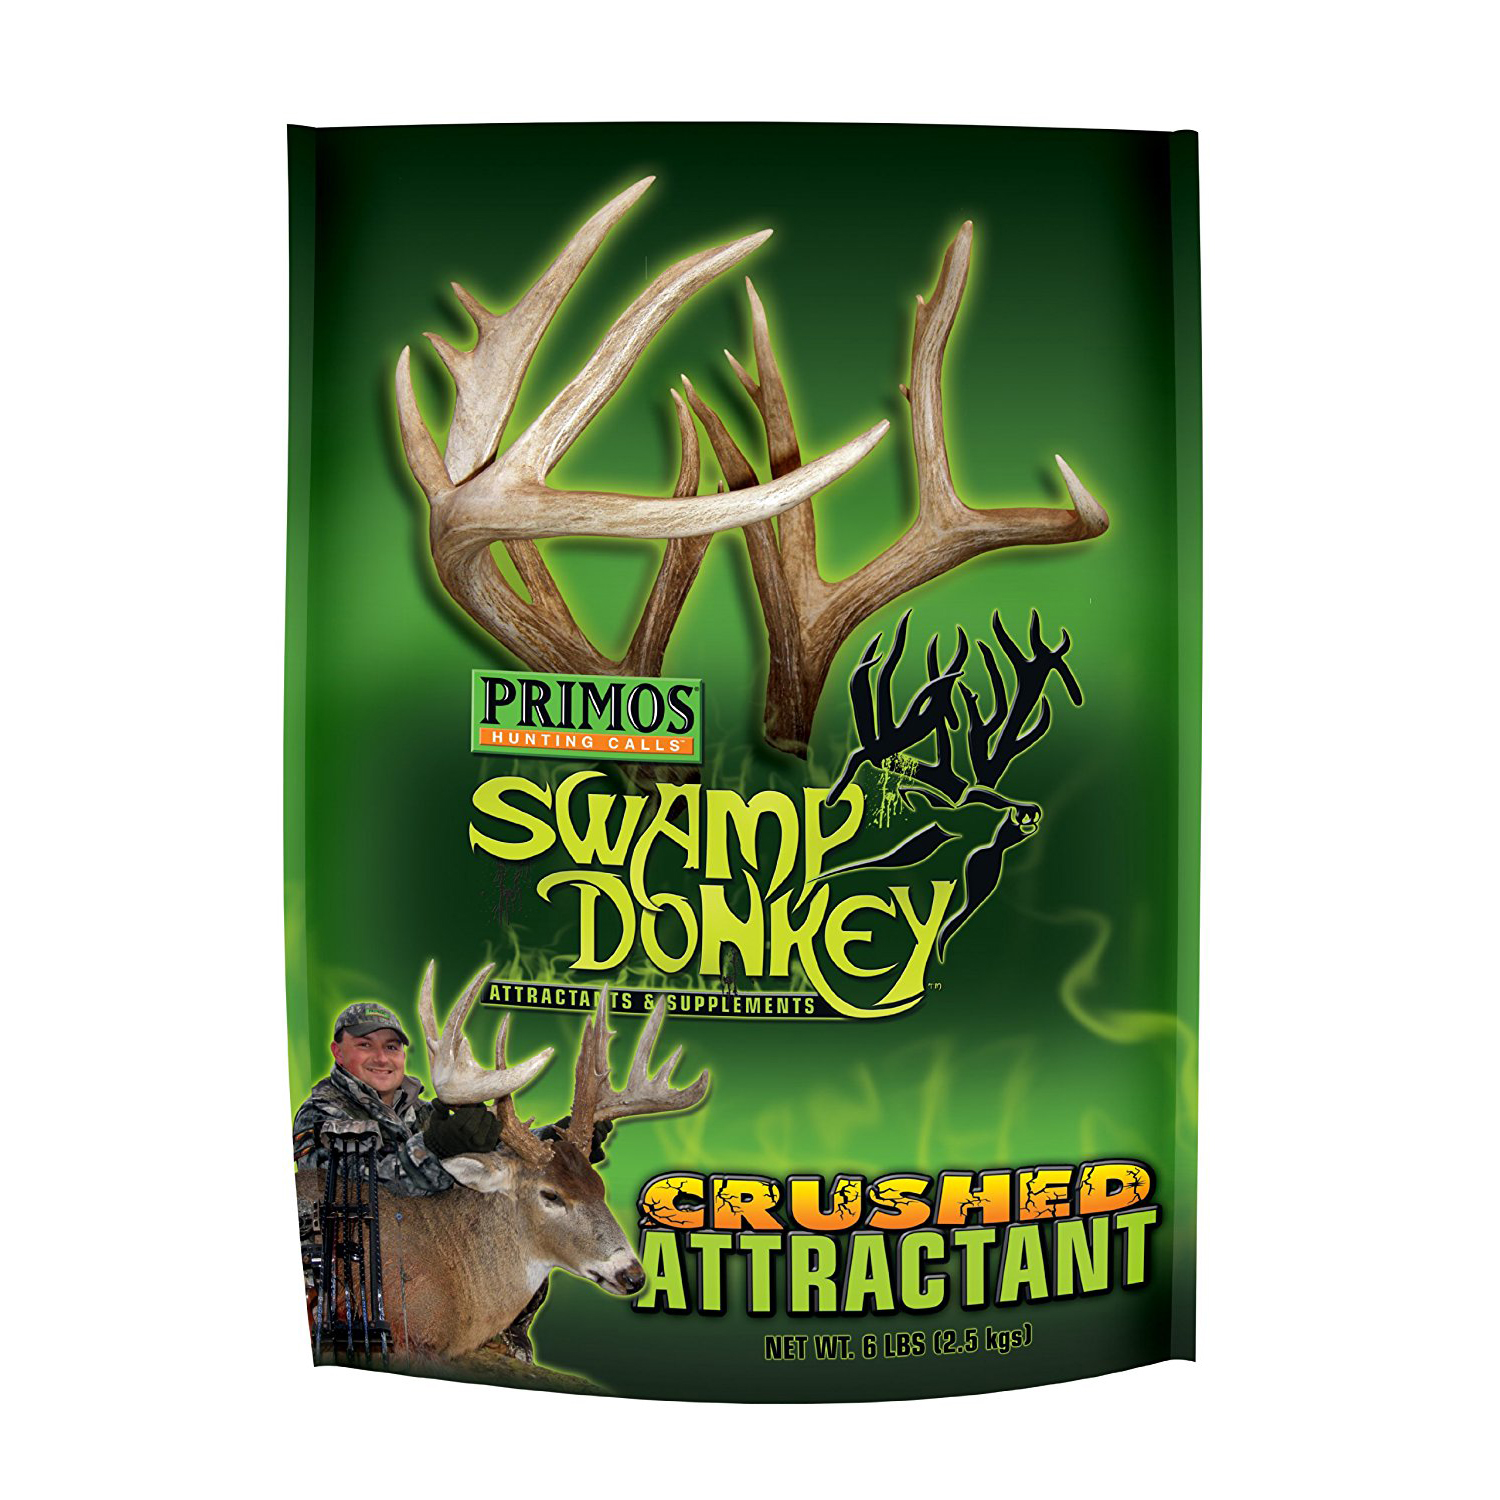 Primos Crushed Attractant - 6 lb. bag 58521